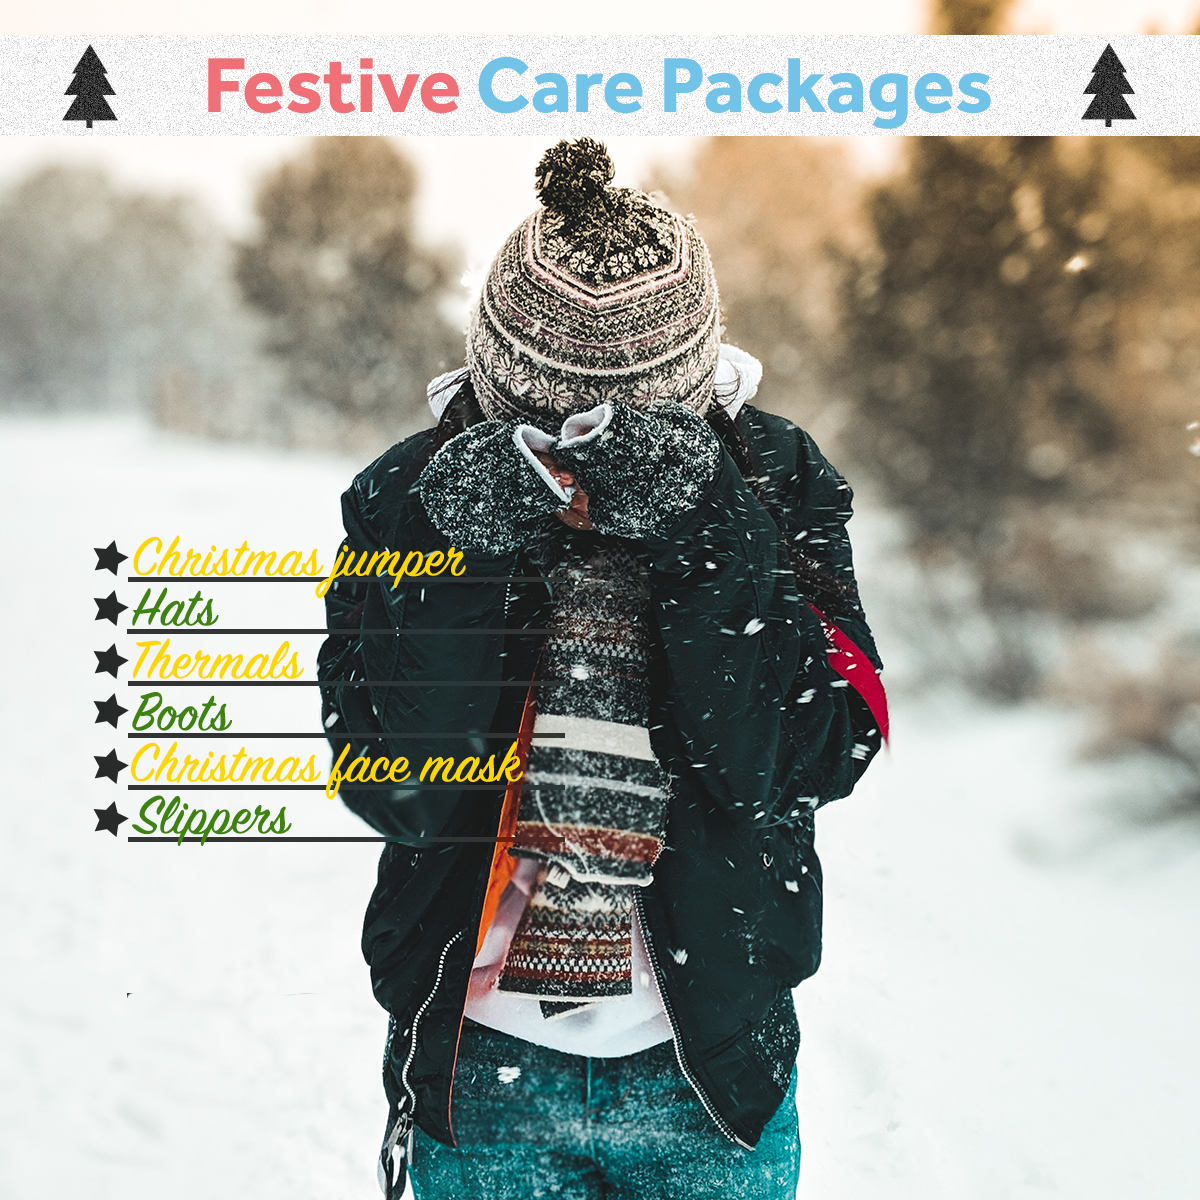 Christmas Care Packages - Winter Clothing